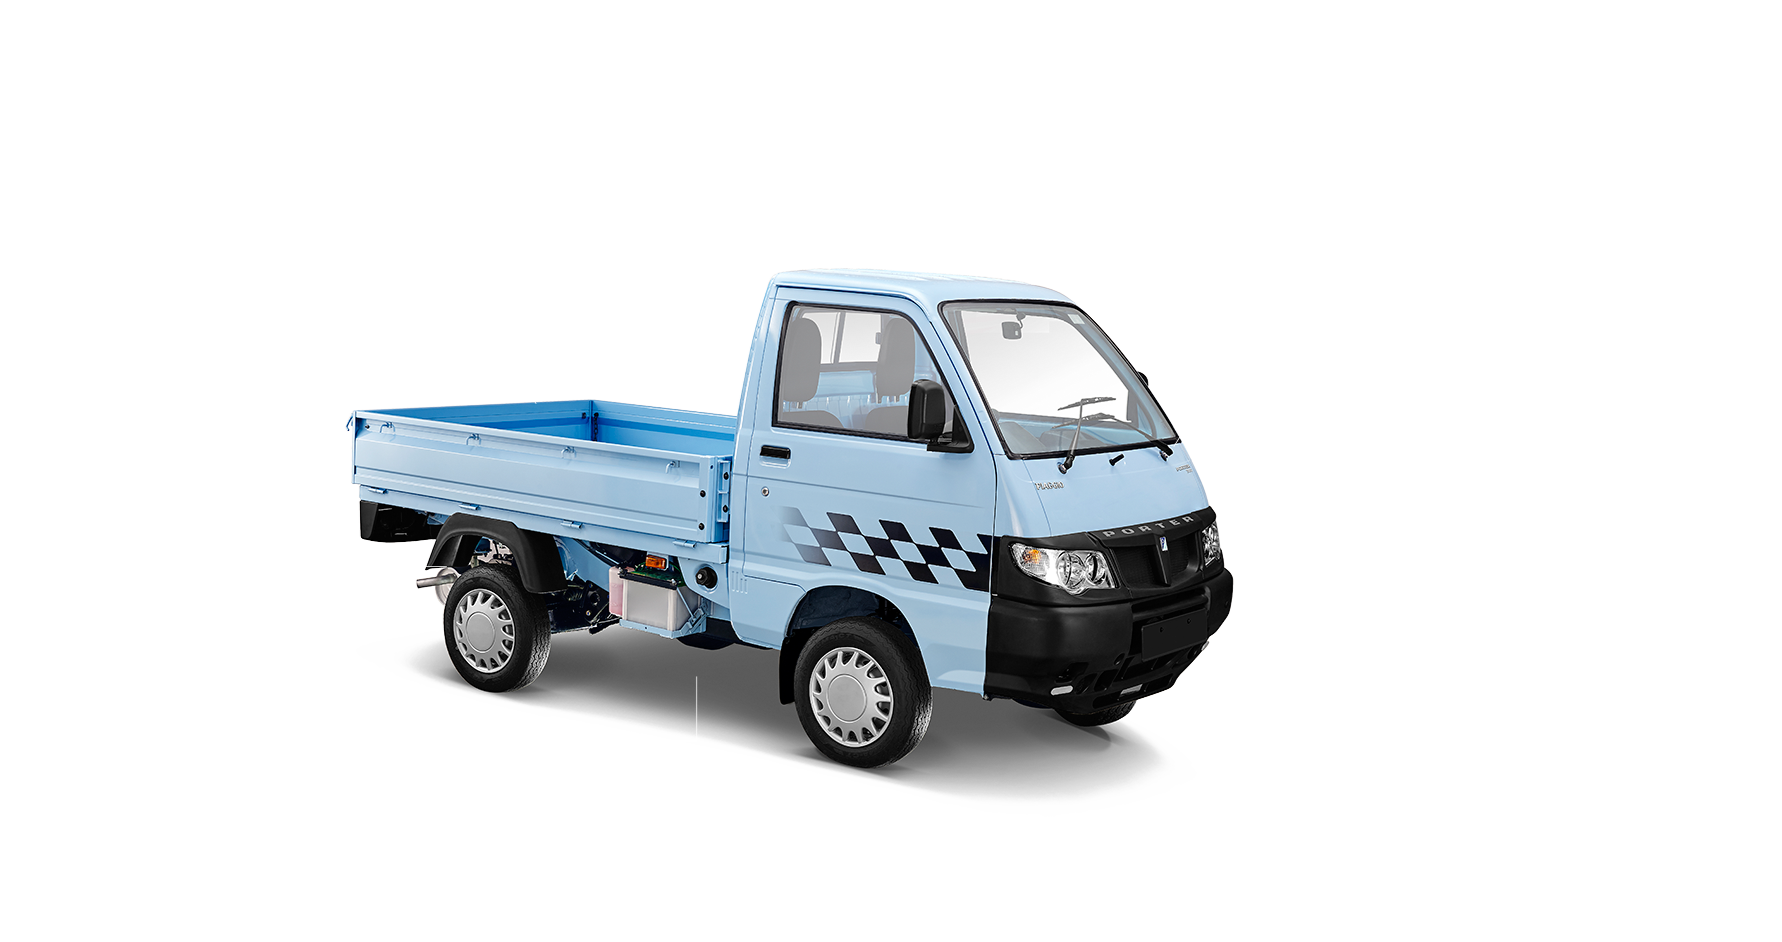 Capacity (cc)	650 Power (kw)	14.3 Torque (Nm)	38 Fuel consumption (km/l)	25.64   OTHER FEATURES   Cargo area (mm)	1950 x 1400 x 315 Gross vehicle weight (kg)	1475 Kerb weight (kg)	775 Payload (kg)	700